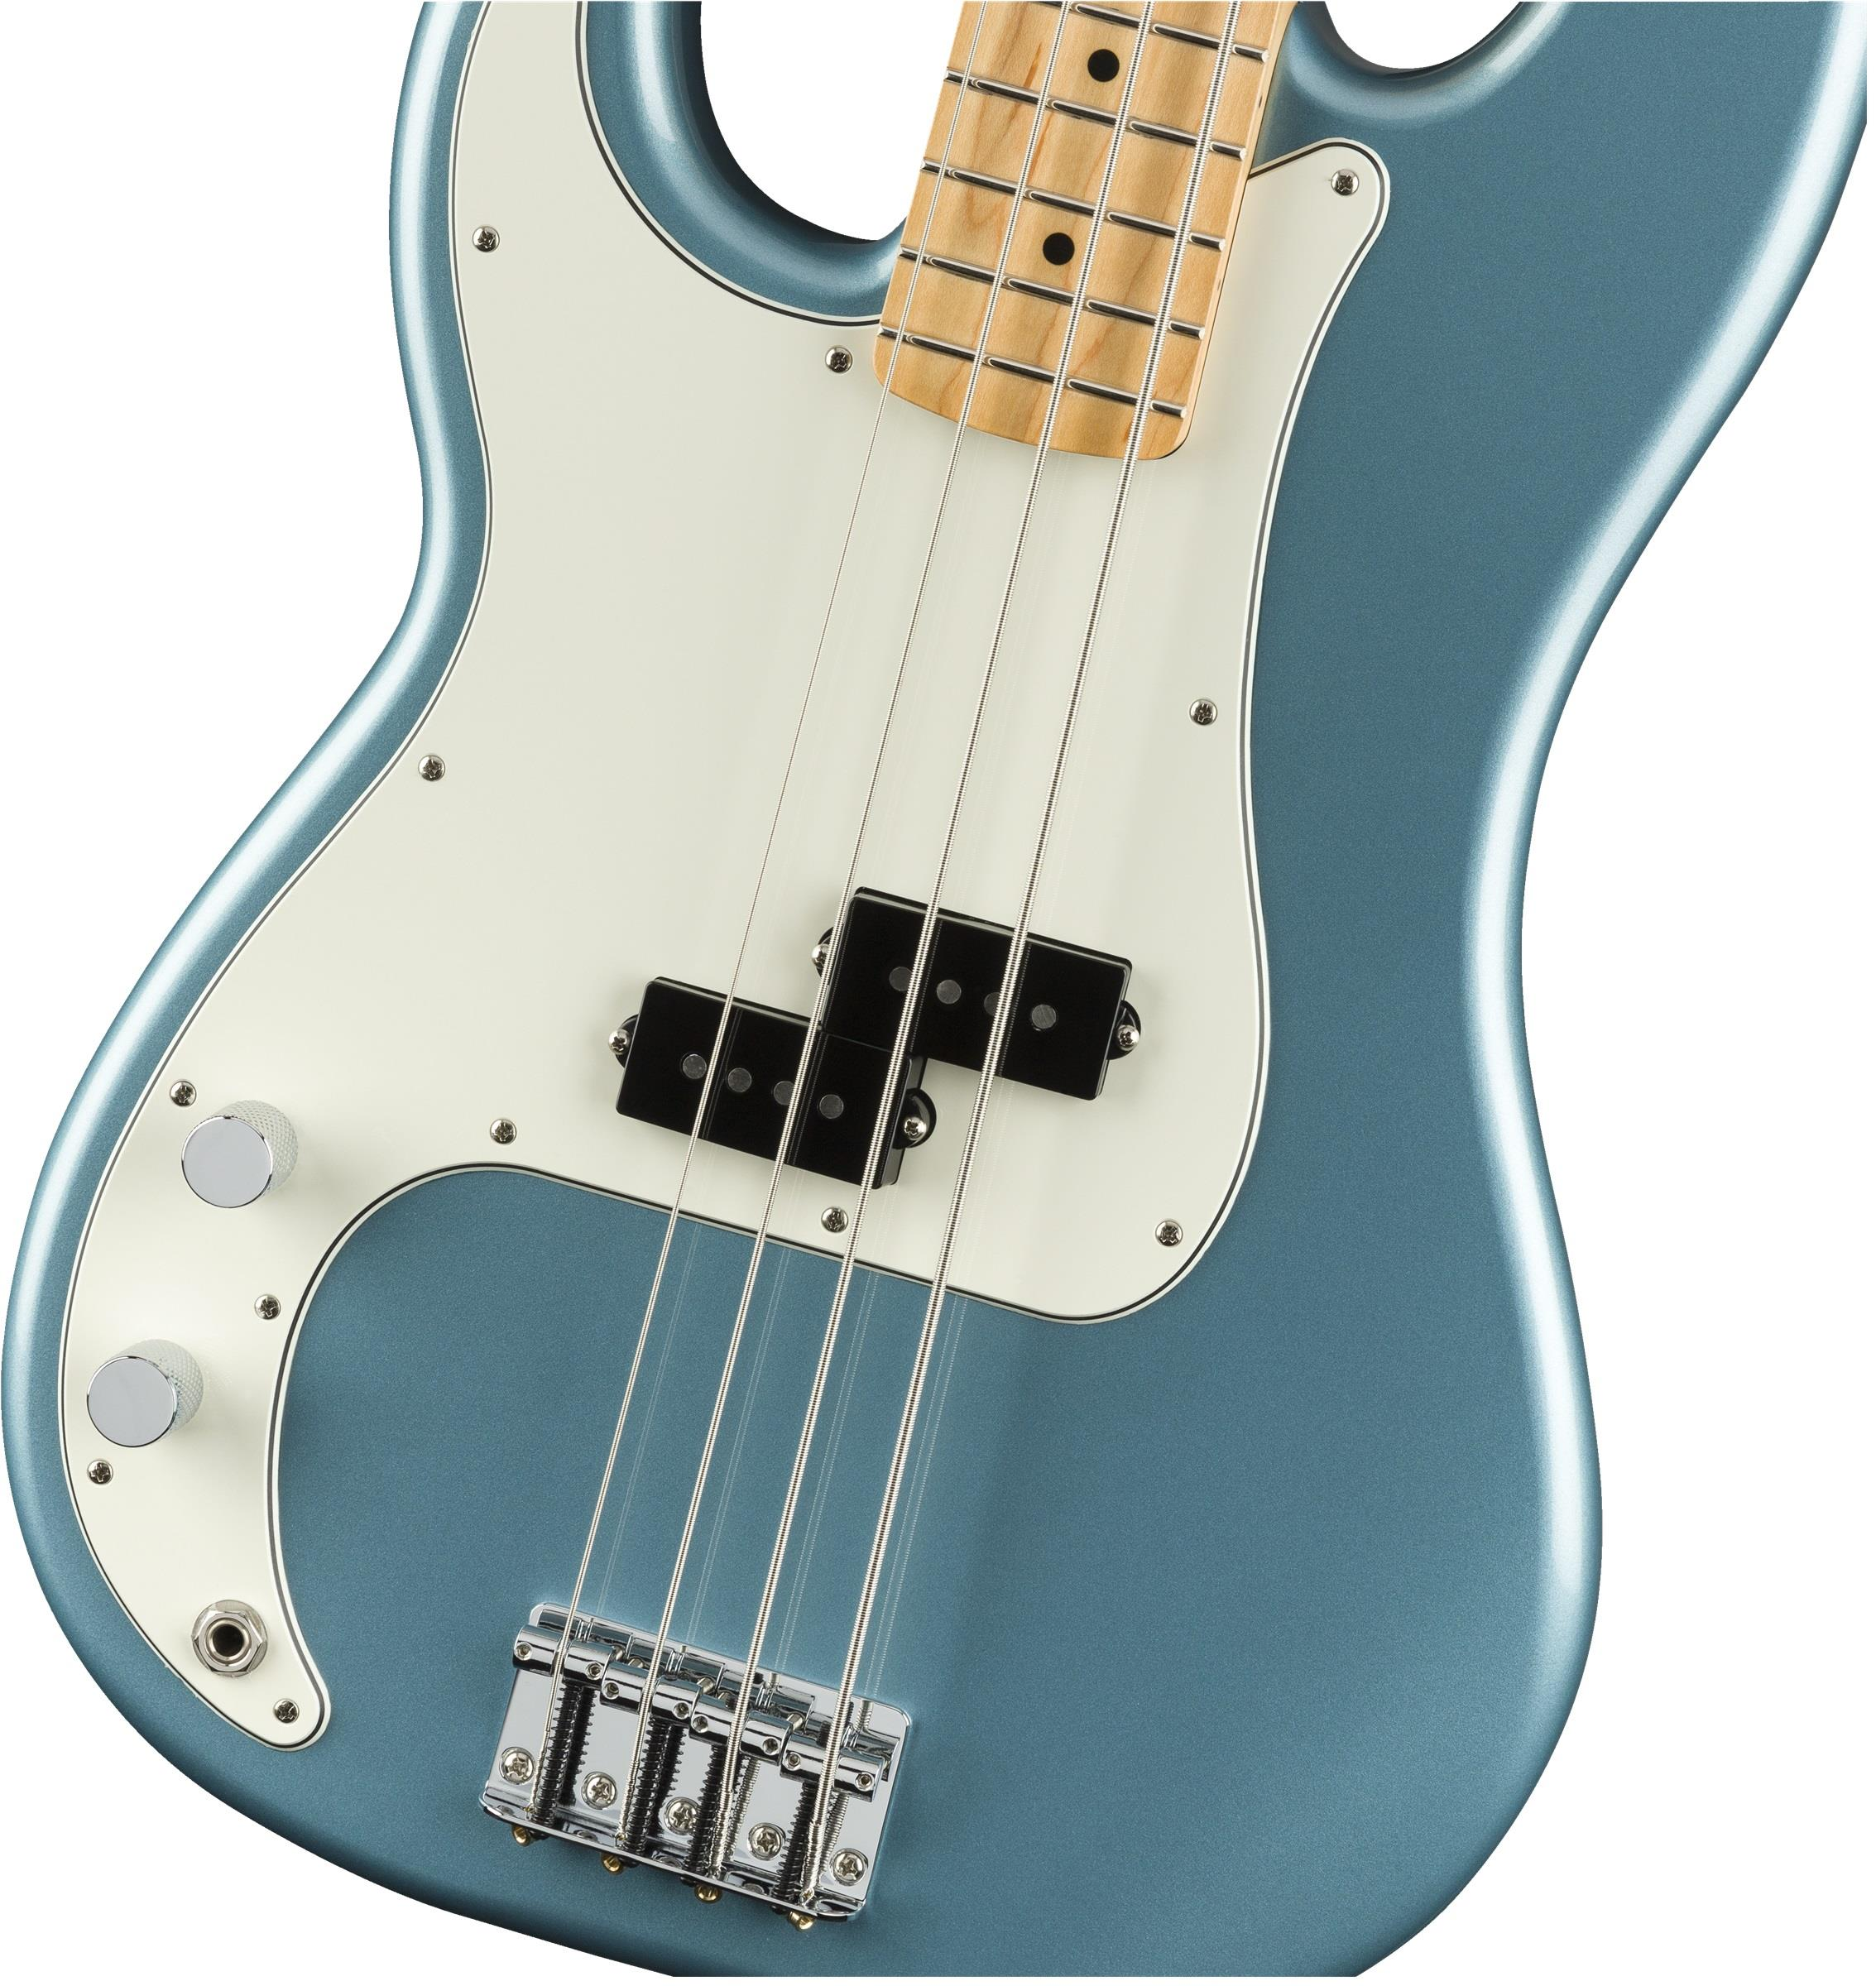 Fender Player Precision Bass Left Handed Mn Tidepool Keymusic Accurate Tone Control Guitar